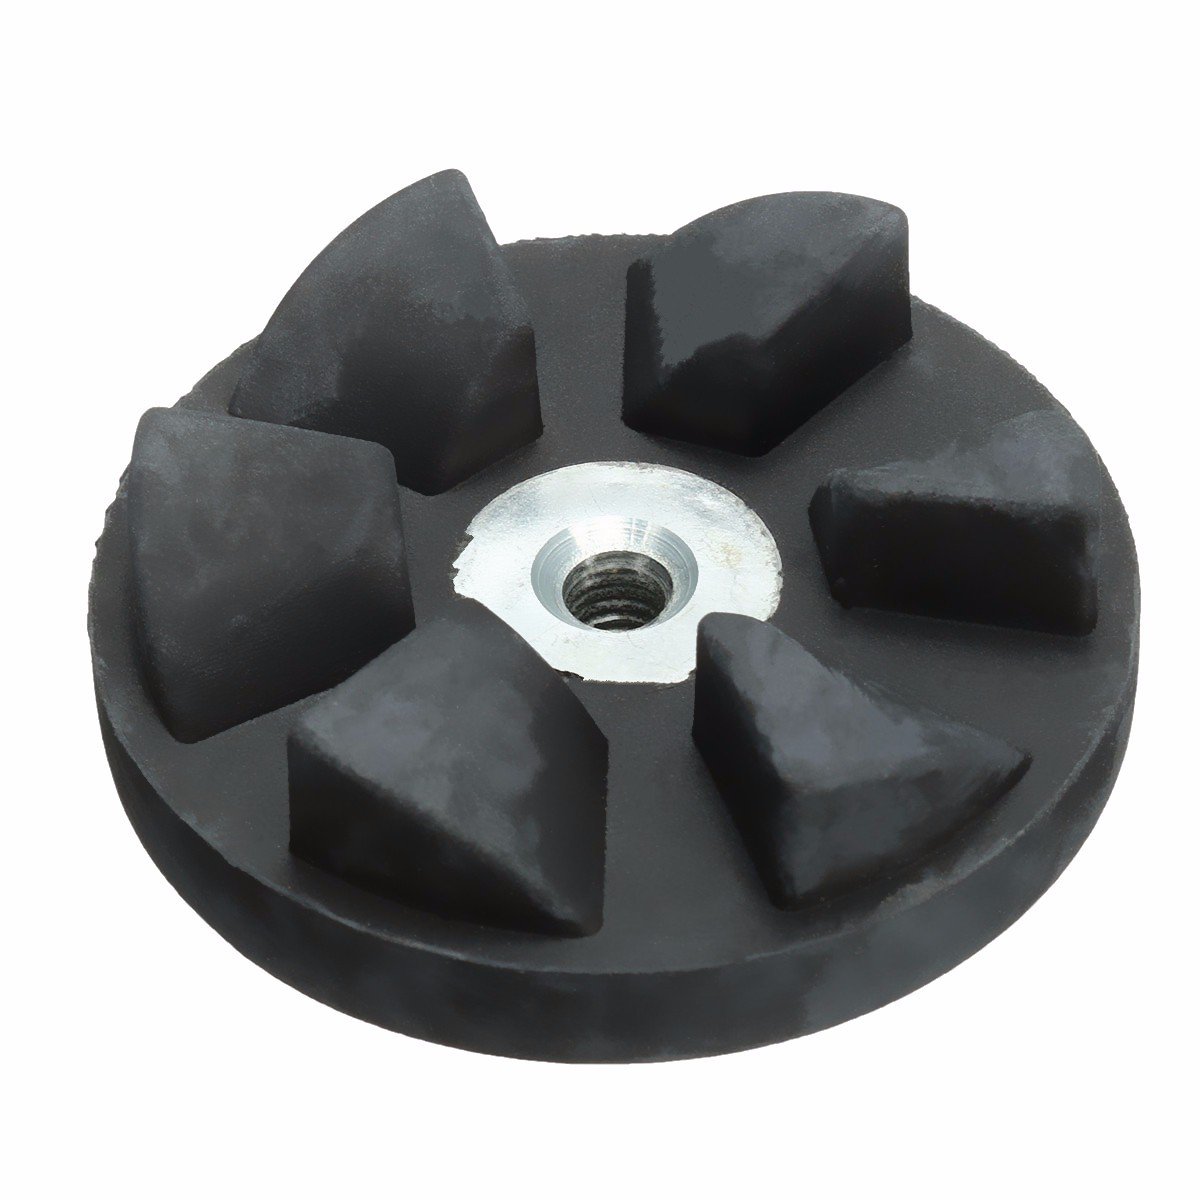 High Quality Rubber Blade Gear Replacement Spare Part For 900w Magic Nutribullet For Juicer Blender Accessories Part Kitchen Appliance Parts